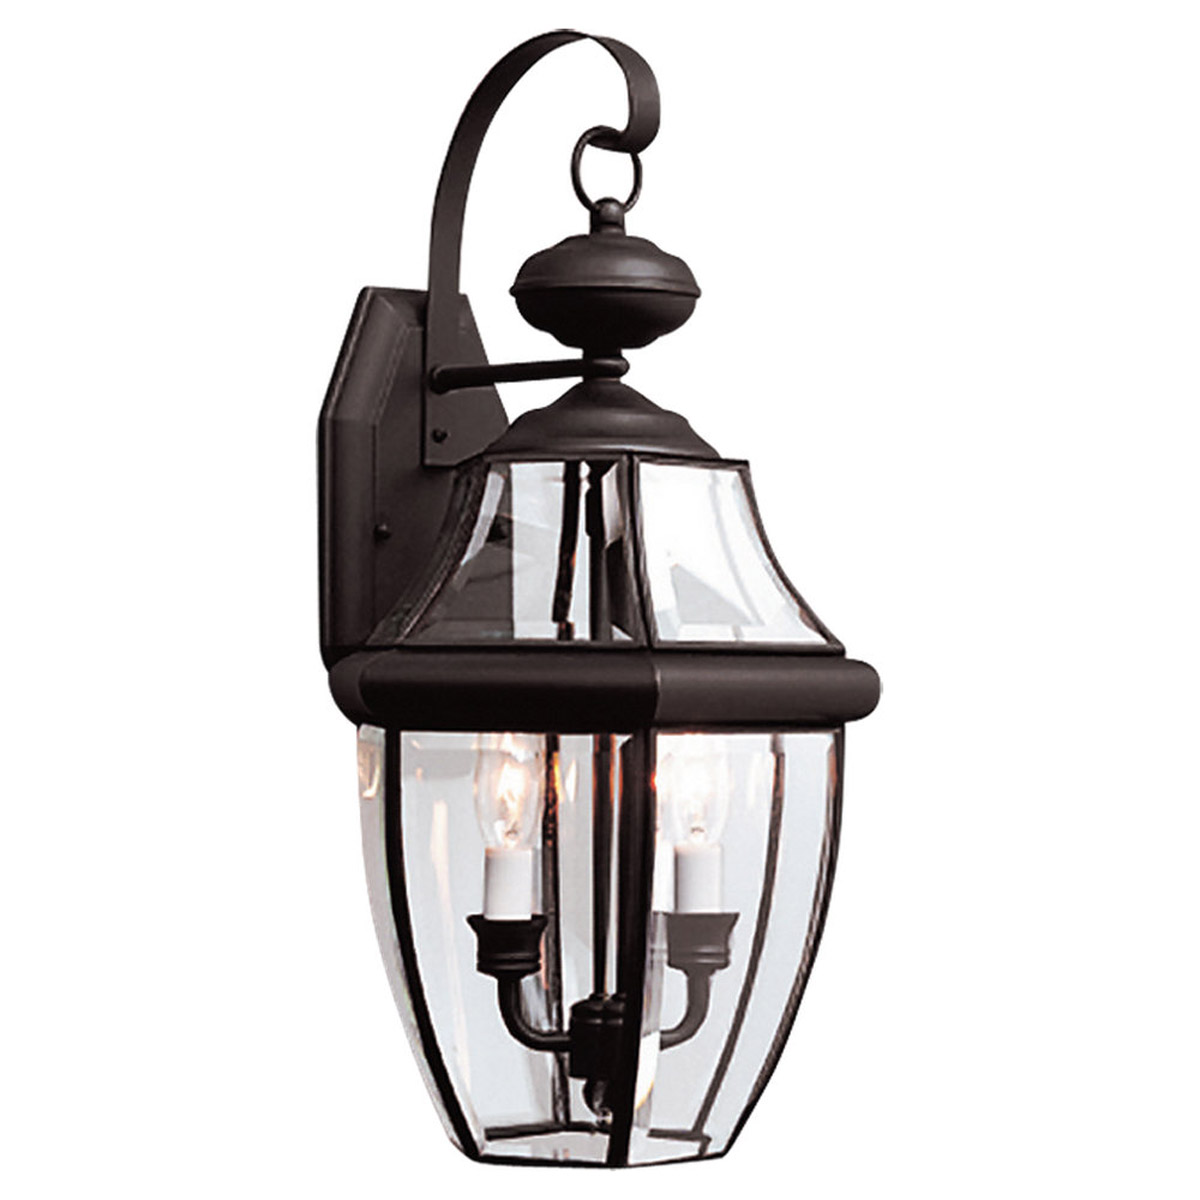 Sea Gull Lighting Lancaster 2 Light Outdoor Wall Lantern in Black 8039-12 photo